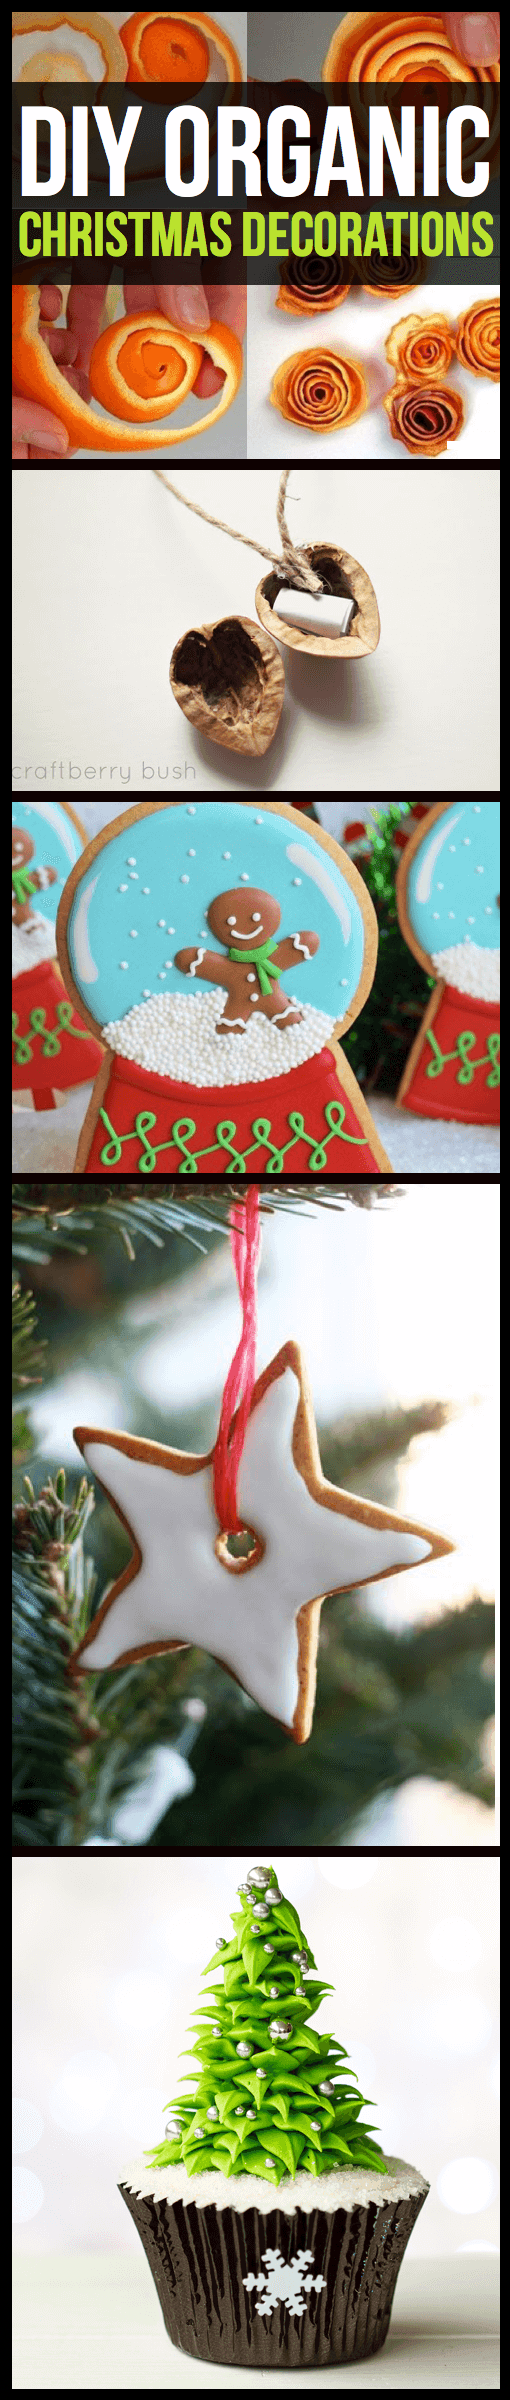 12 DIY Organic Christmas Decorations That Will Make Your Home Look and Feel Sweeter